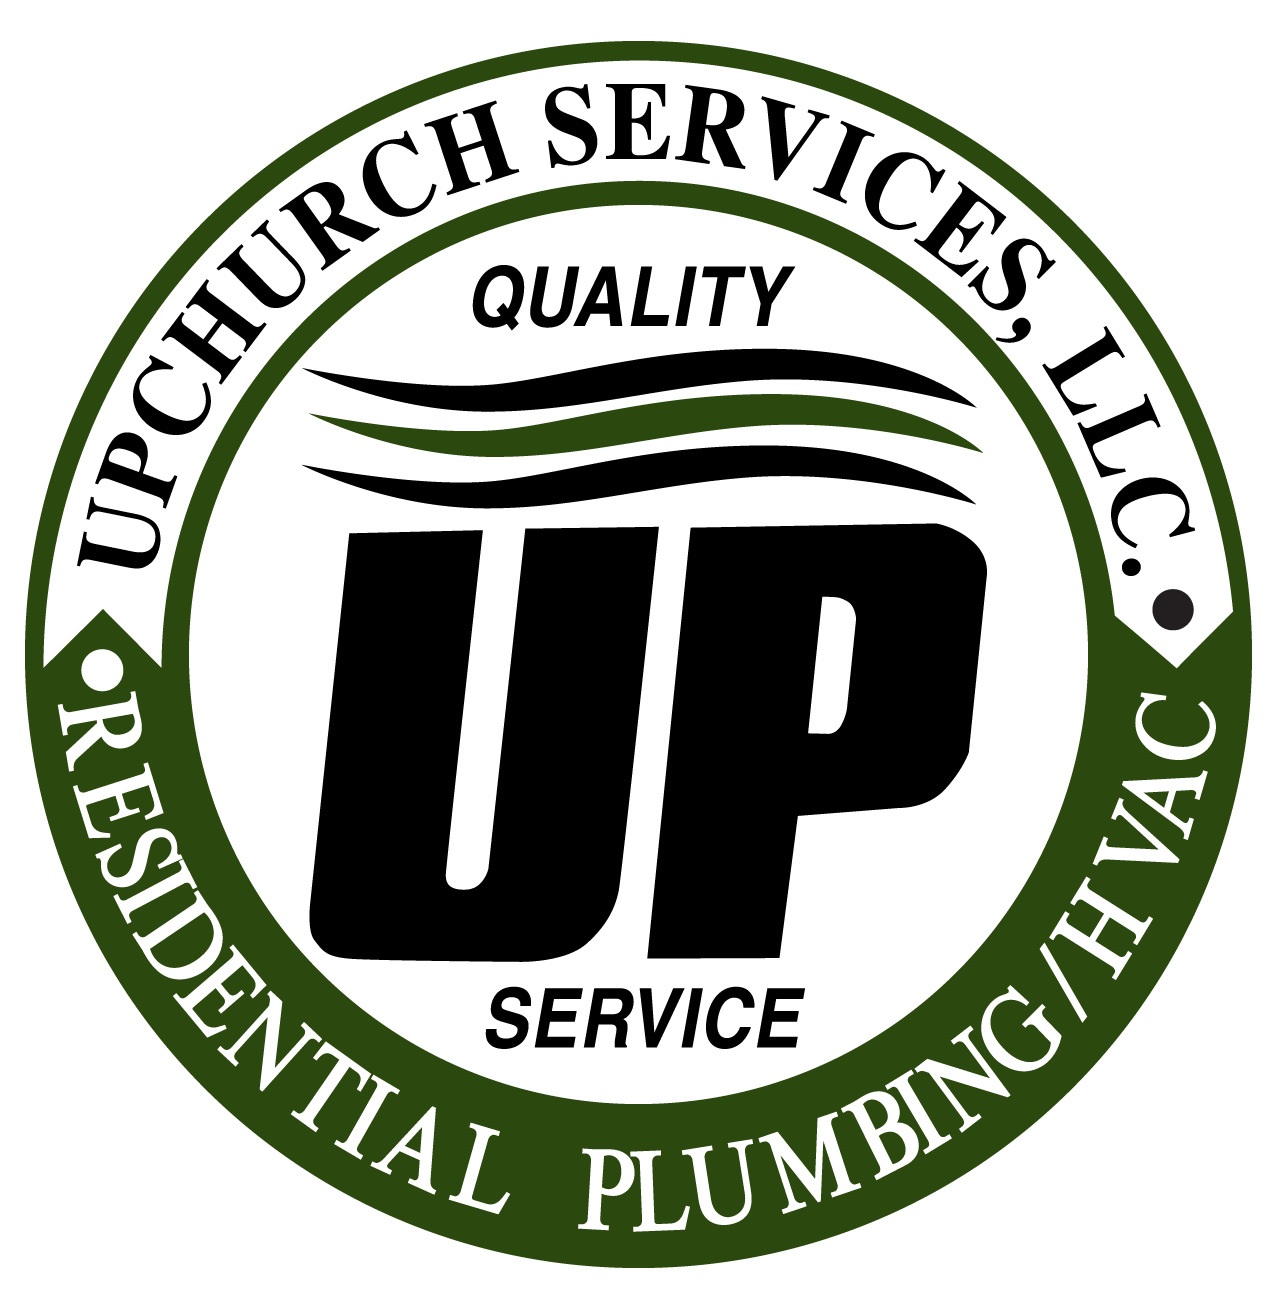 Please call UPCHURCH Services for all your heating and cooling needs!